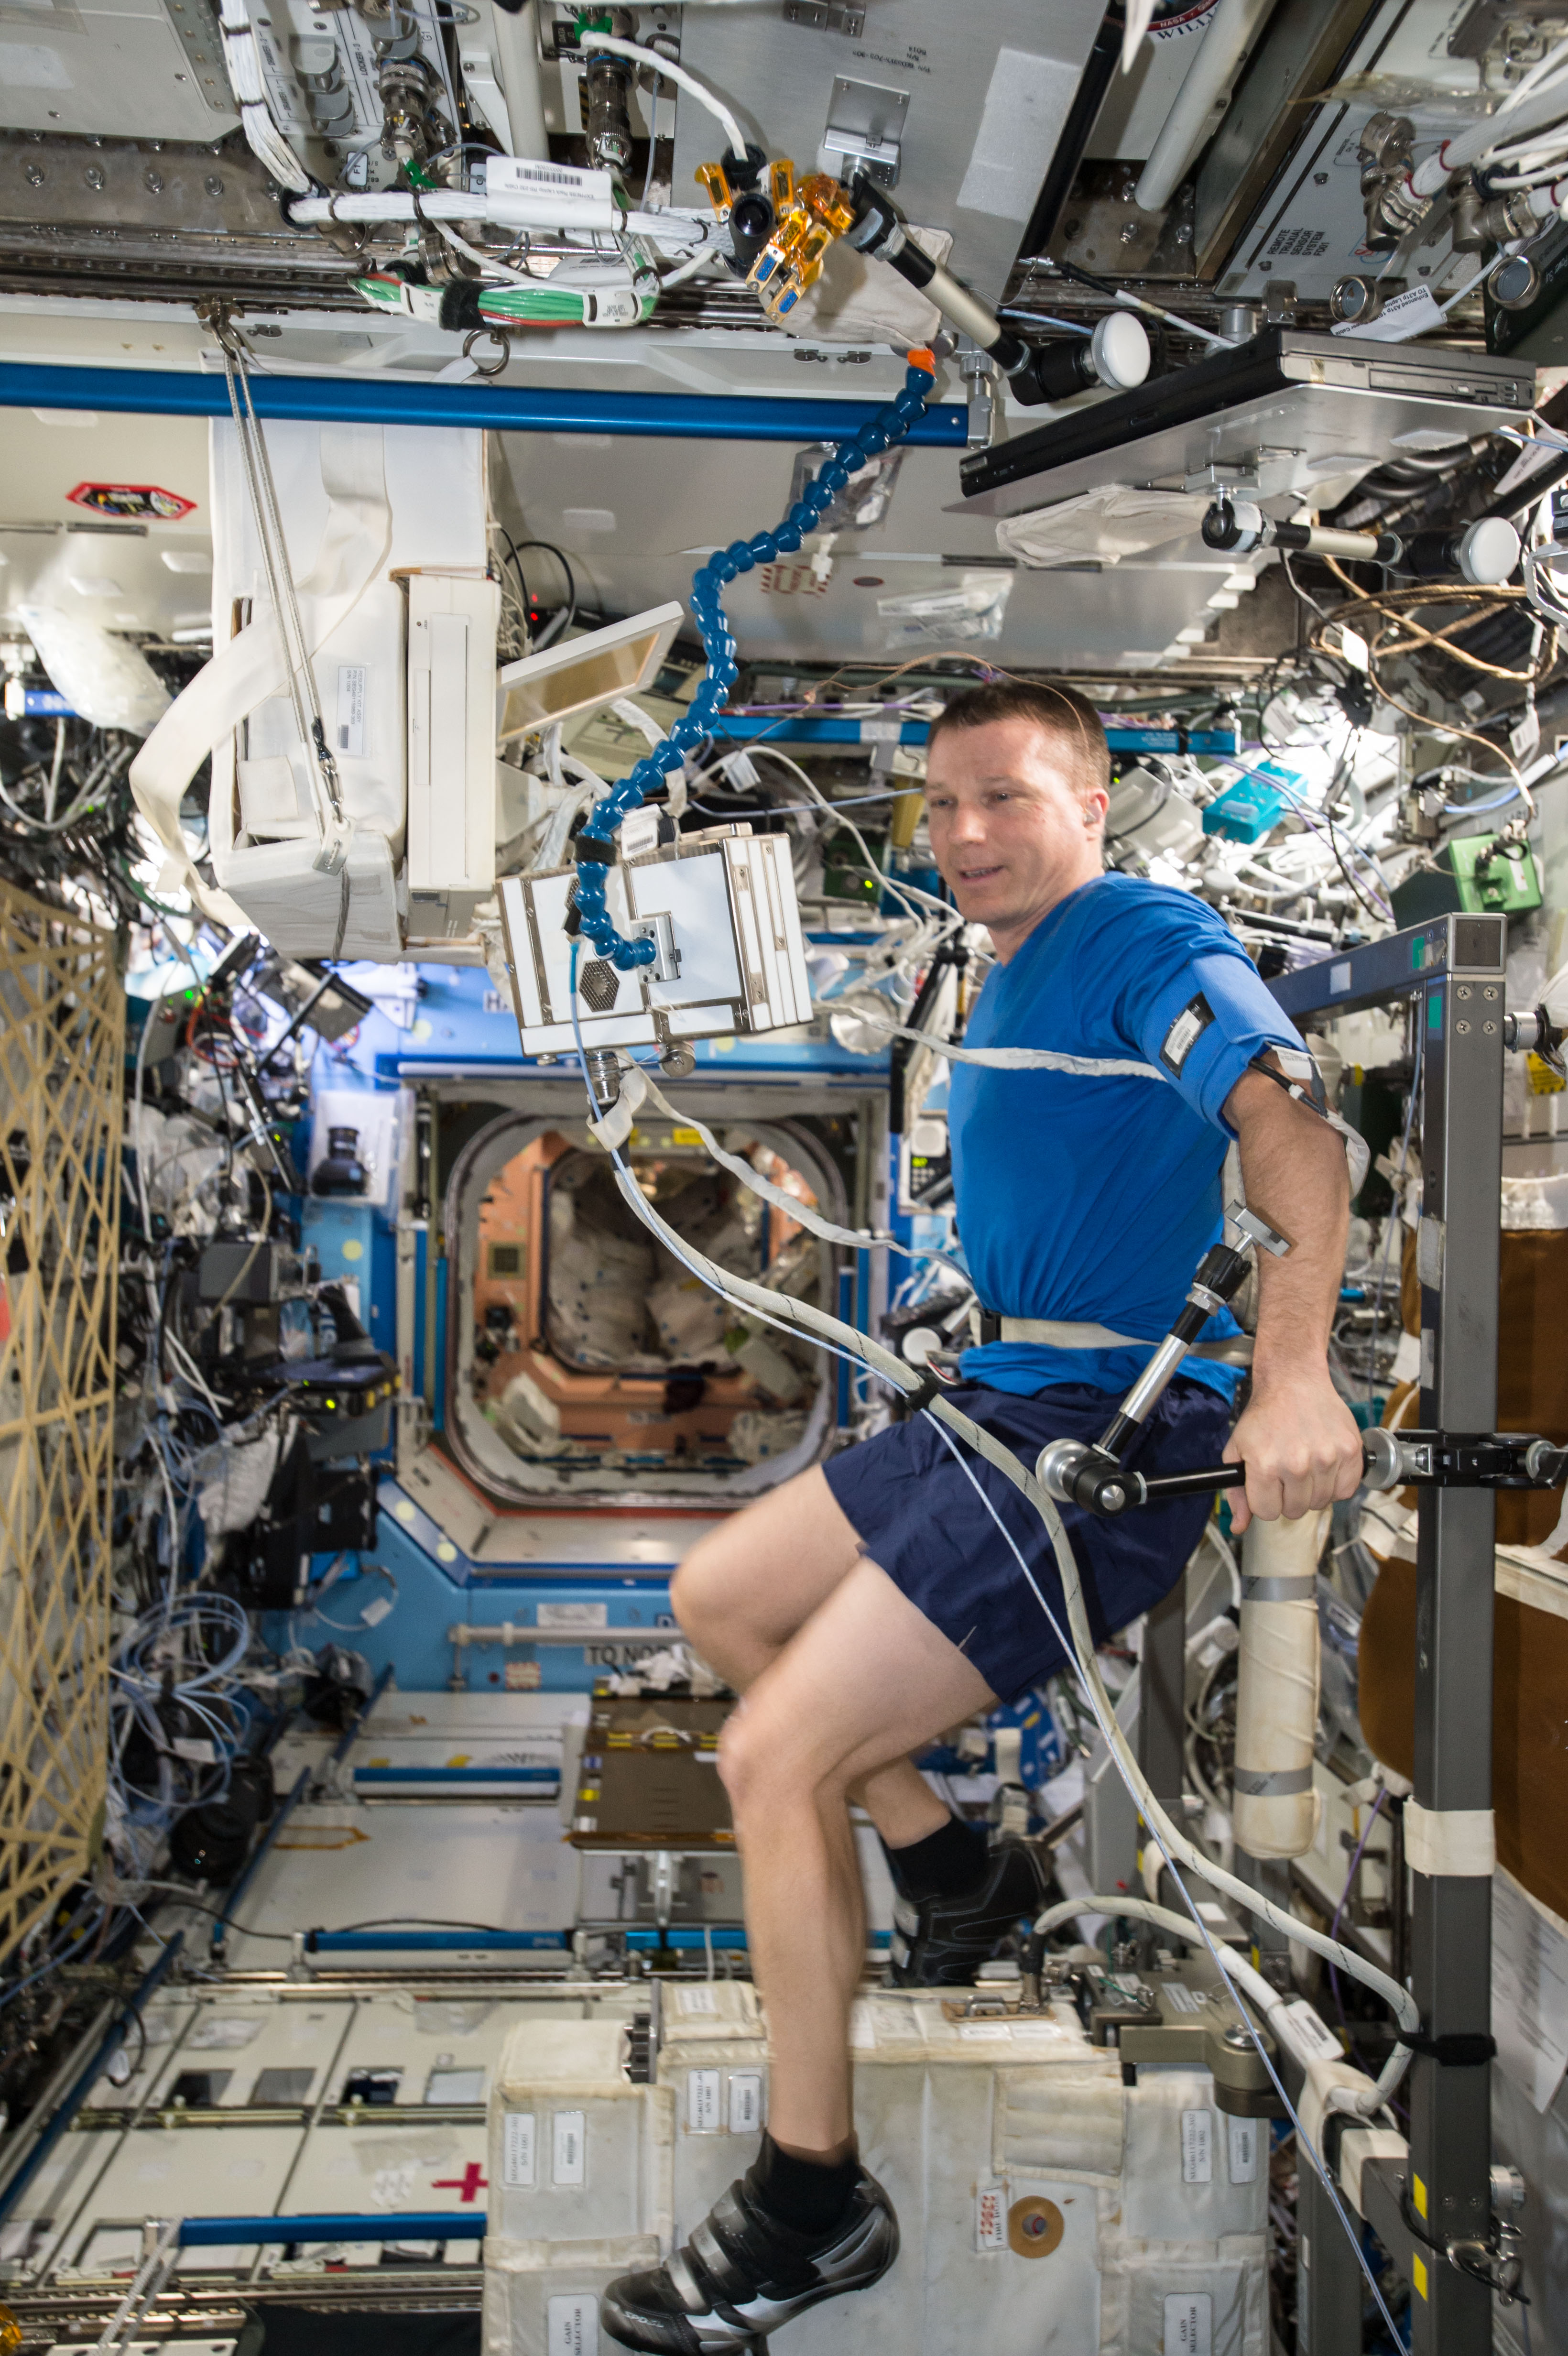 File:ISS-42 Terry Virts exercises on the Cycle Ergometer ...